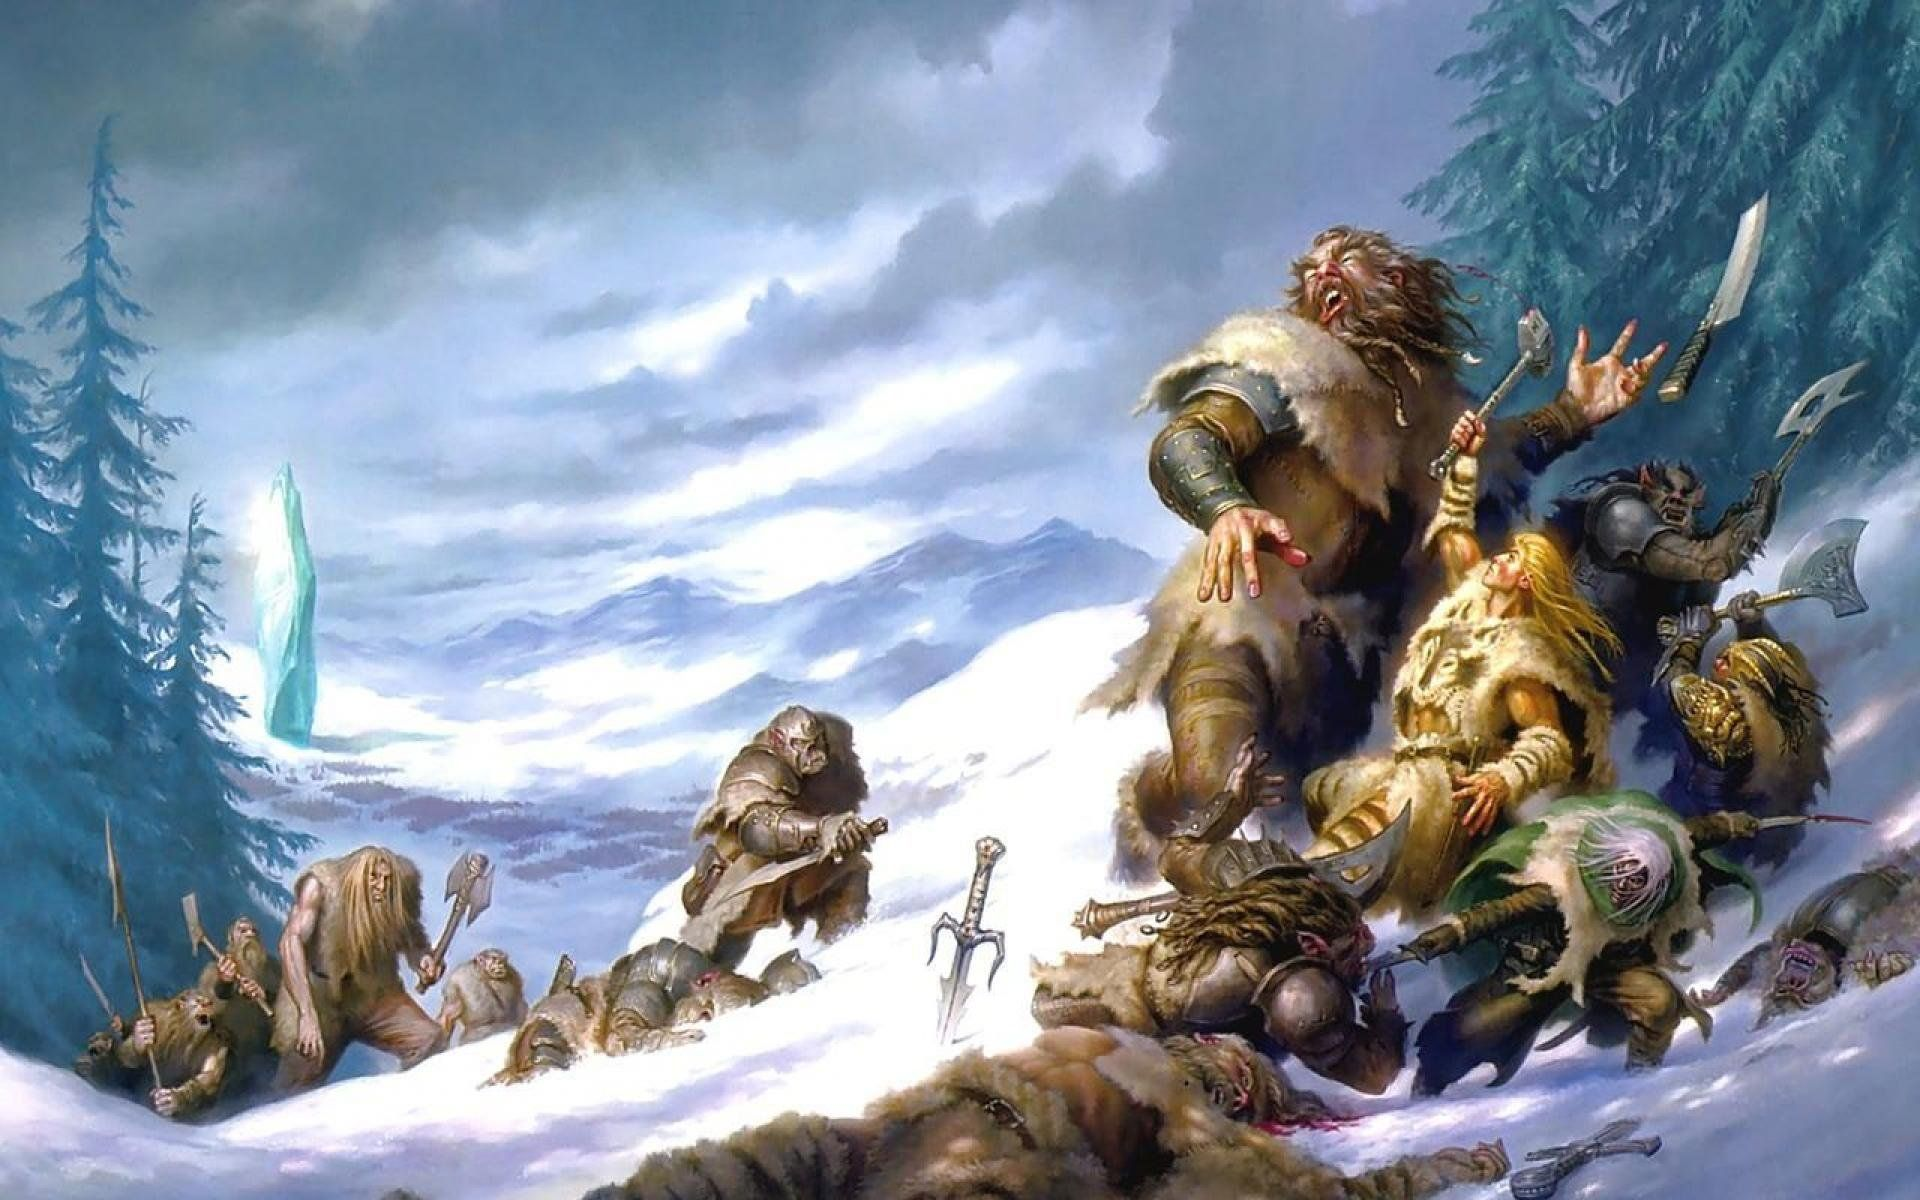 Dungeons And Dragons Hd Wallpapers Hd Wallpapers Dd - Crystal Shard Salvatore - HD Wallpaper